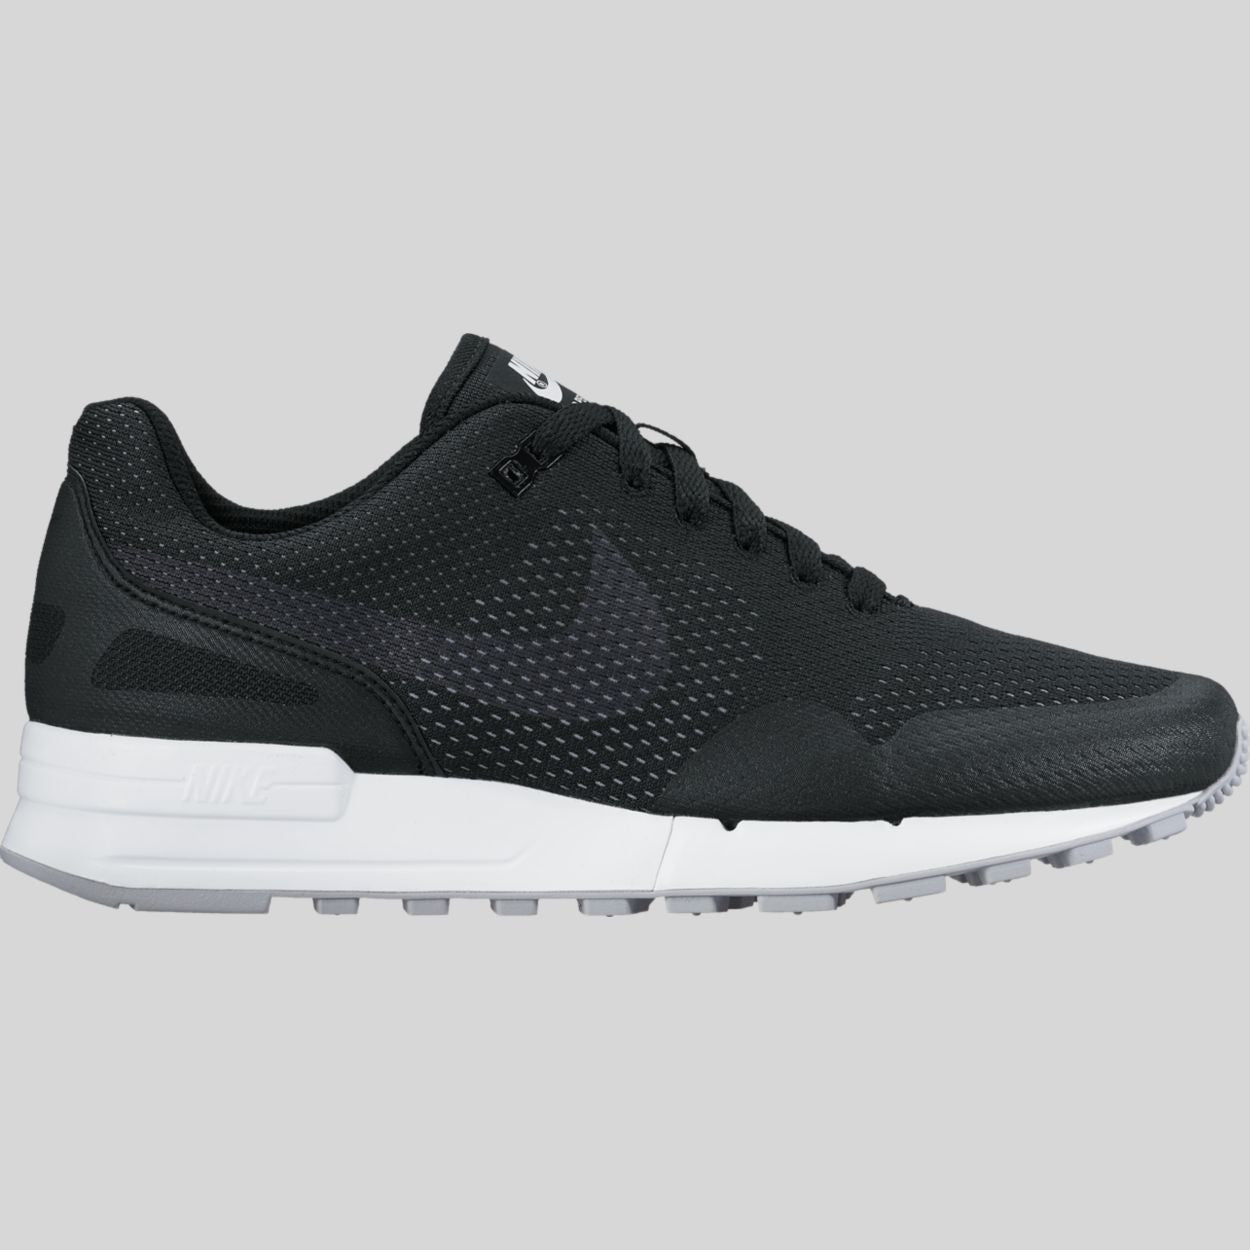 90504193062a Nike Air Pegasus 89 EGD Black Anthracite Wolf Grey (876111-001 ...